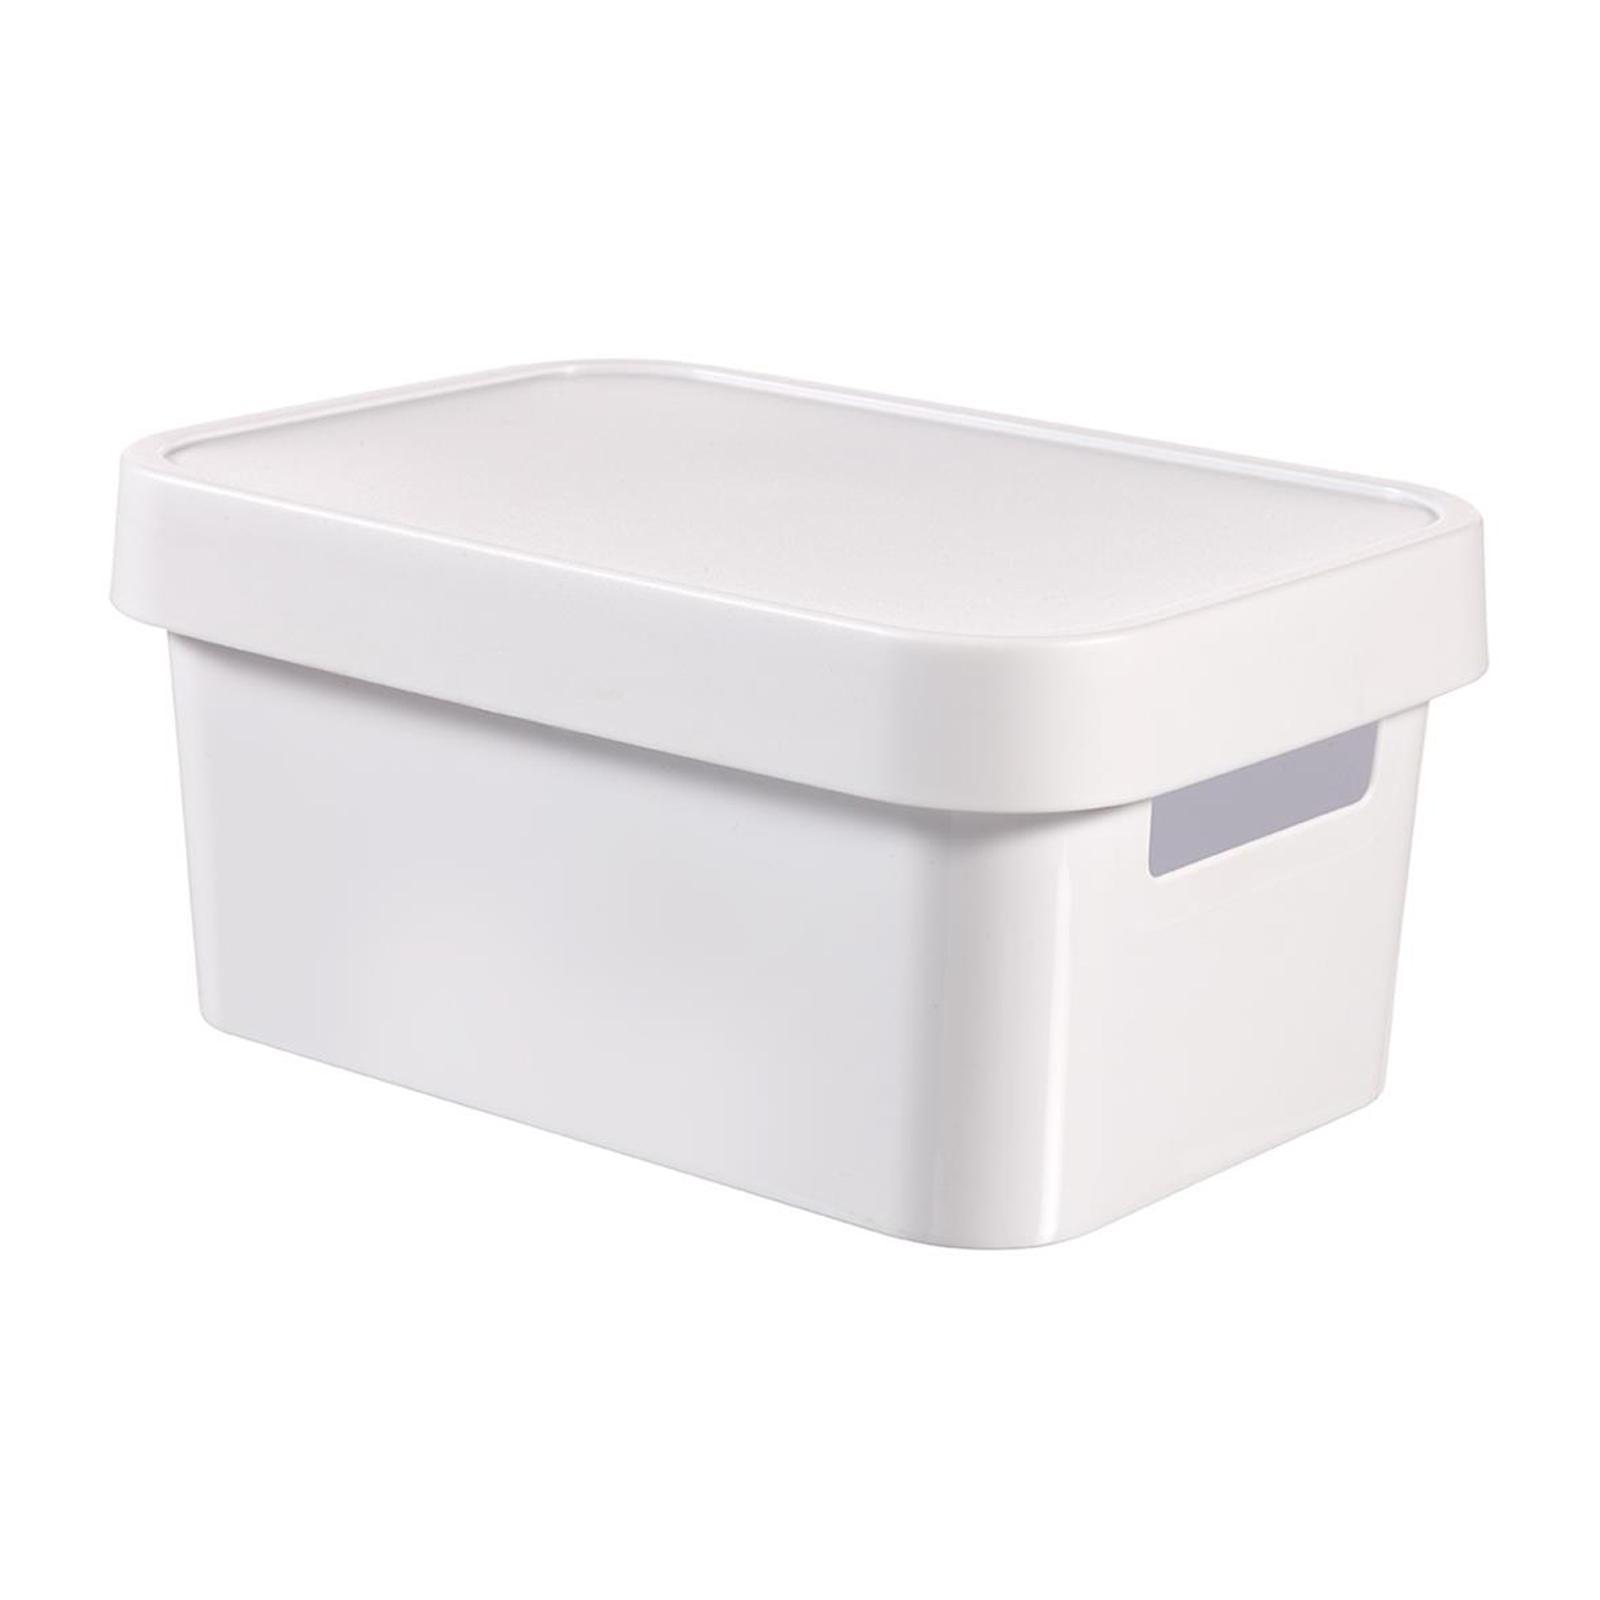 Curver Infinity Box With Lid White